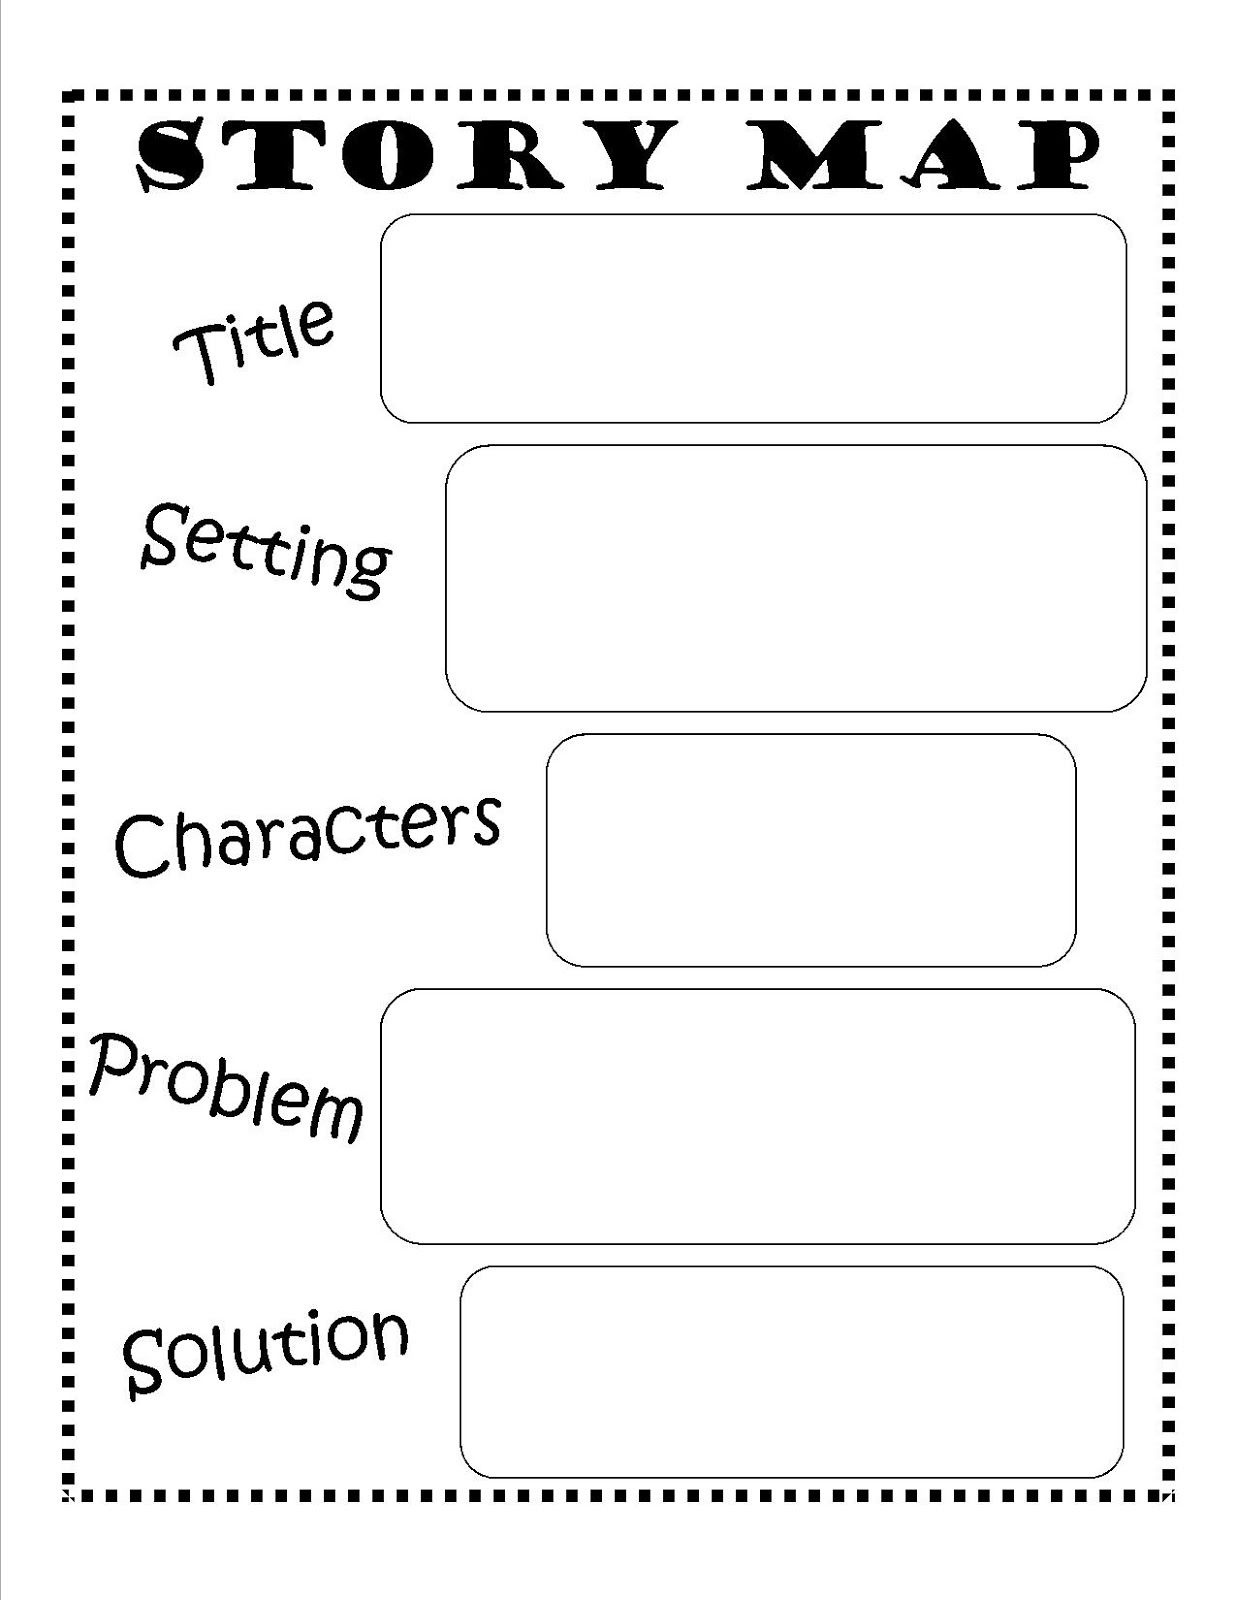 Story Map - Free Printable #reading #writing #kids | Ela | Story Map - Free Printable Main Idea Graphic Organizer